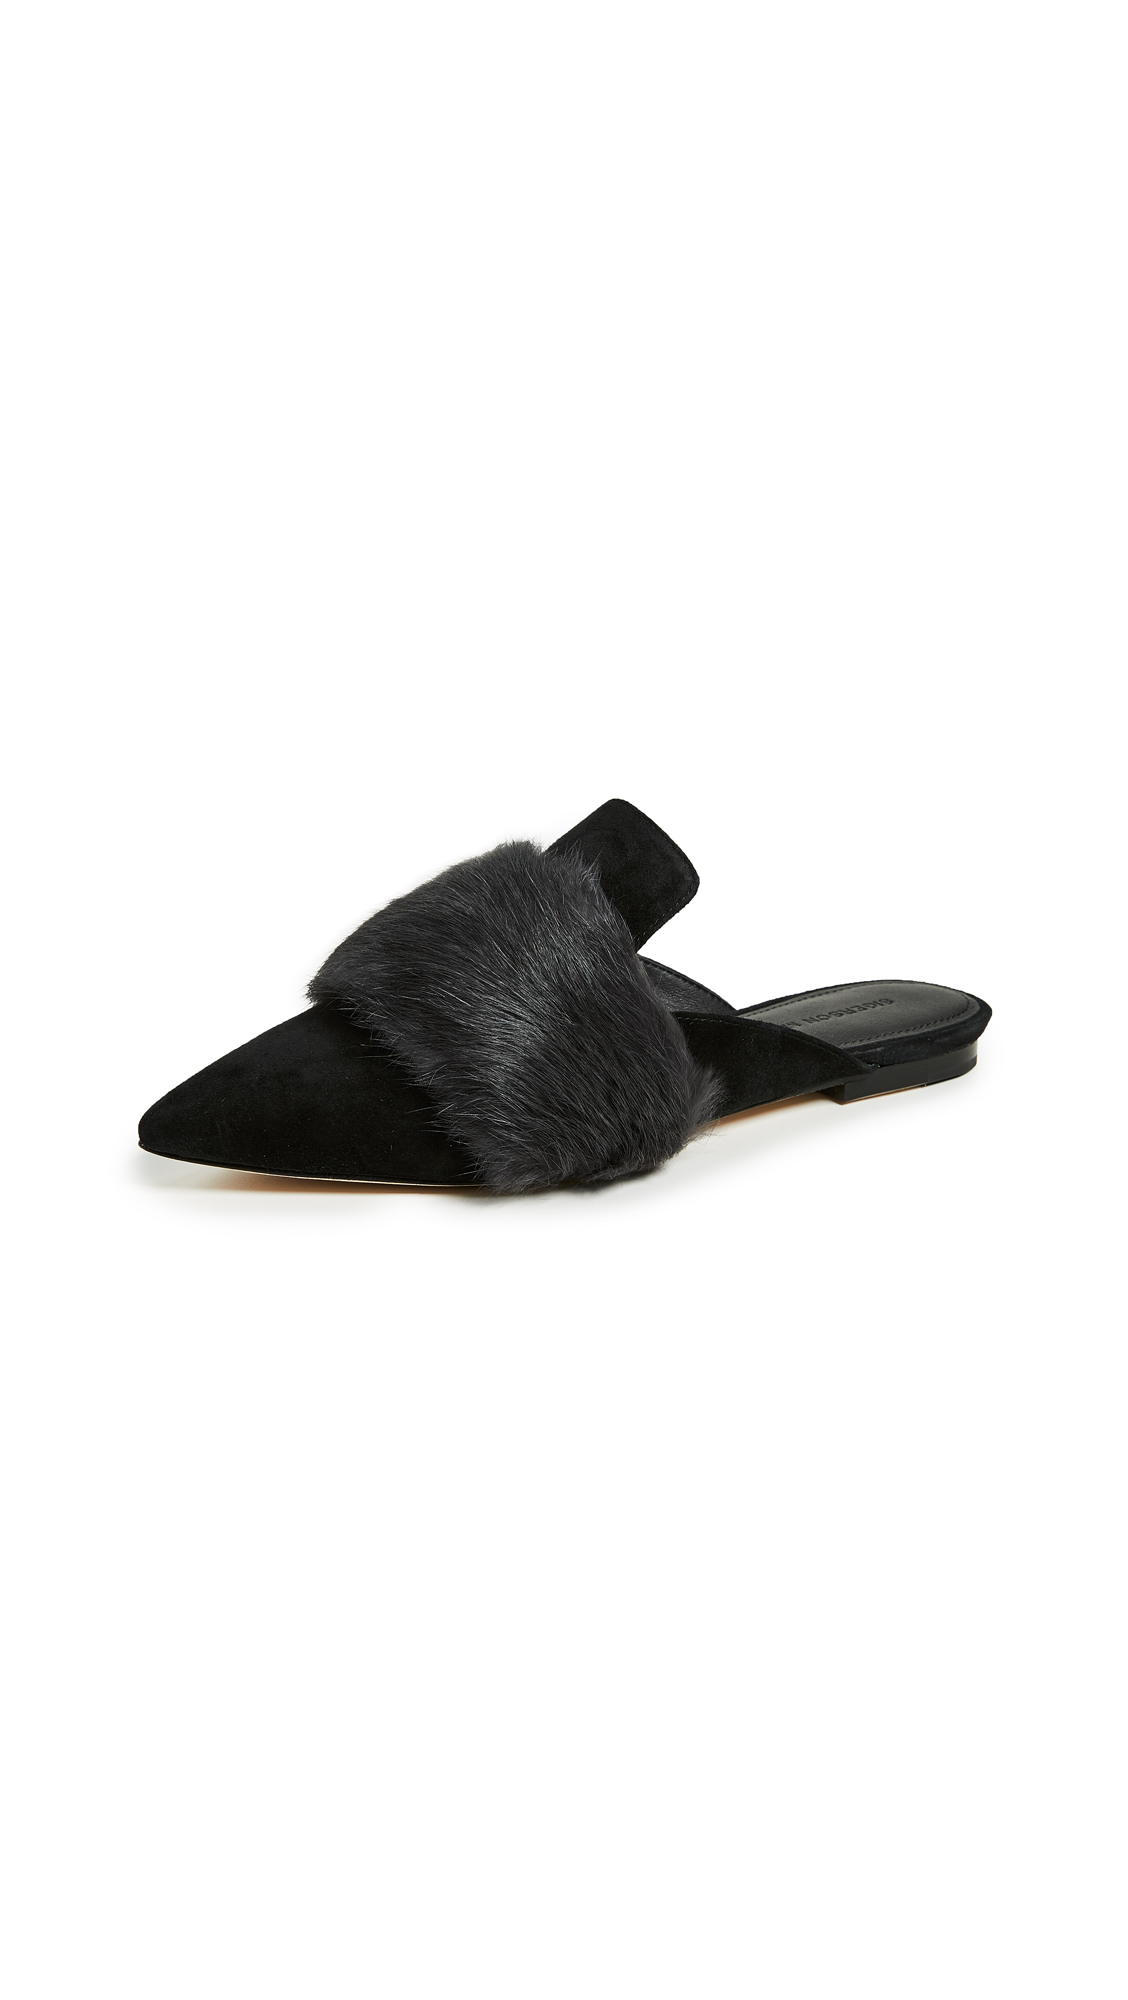 Sigerson Morrison Dawn Point Toe Mules - Black Grey